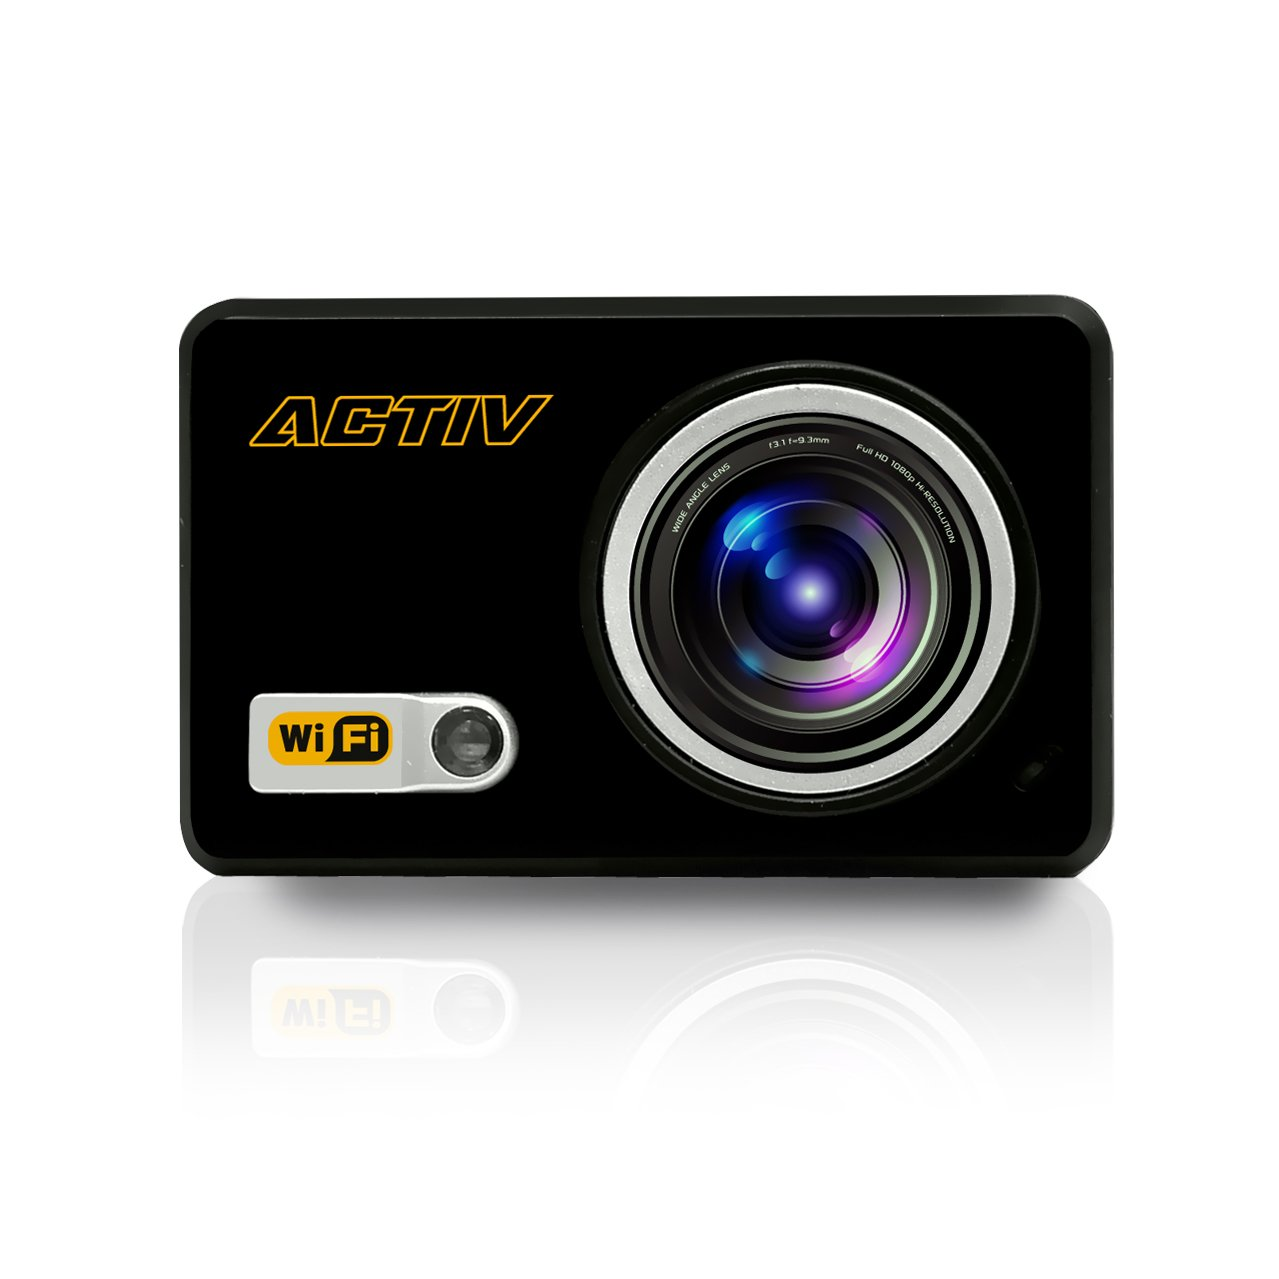 Sound Around GDV288BK HD Video Recording Gear Pro ACTIV Full HD 1080p Hi-Res Mini Sports Action Camera and Camcorder with Wi-Fi